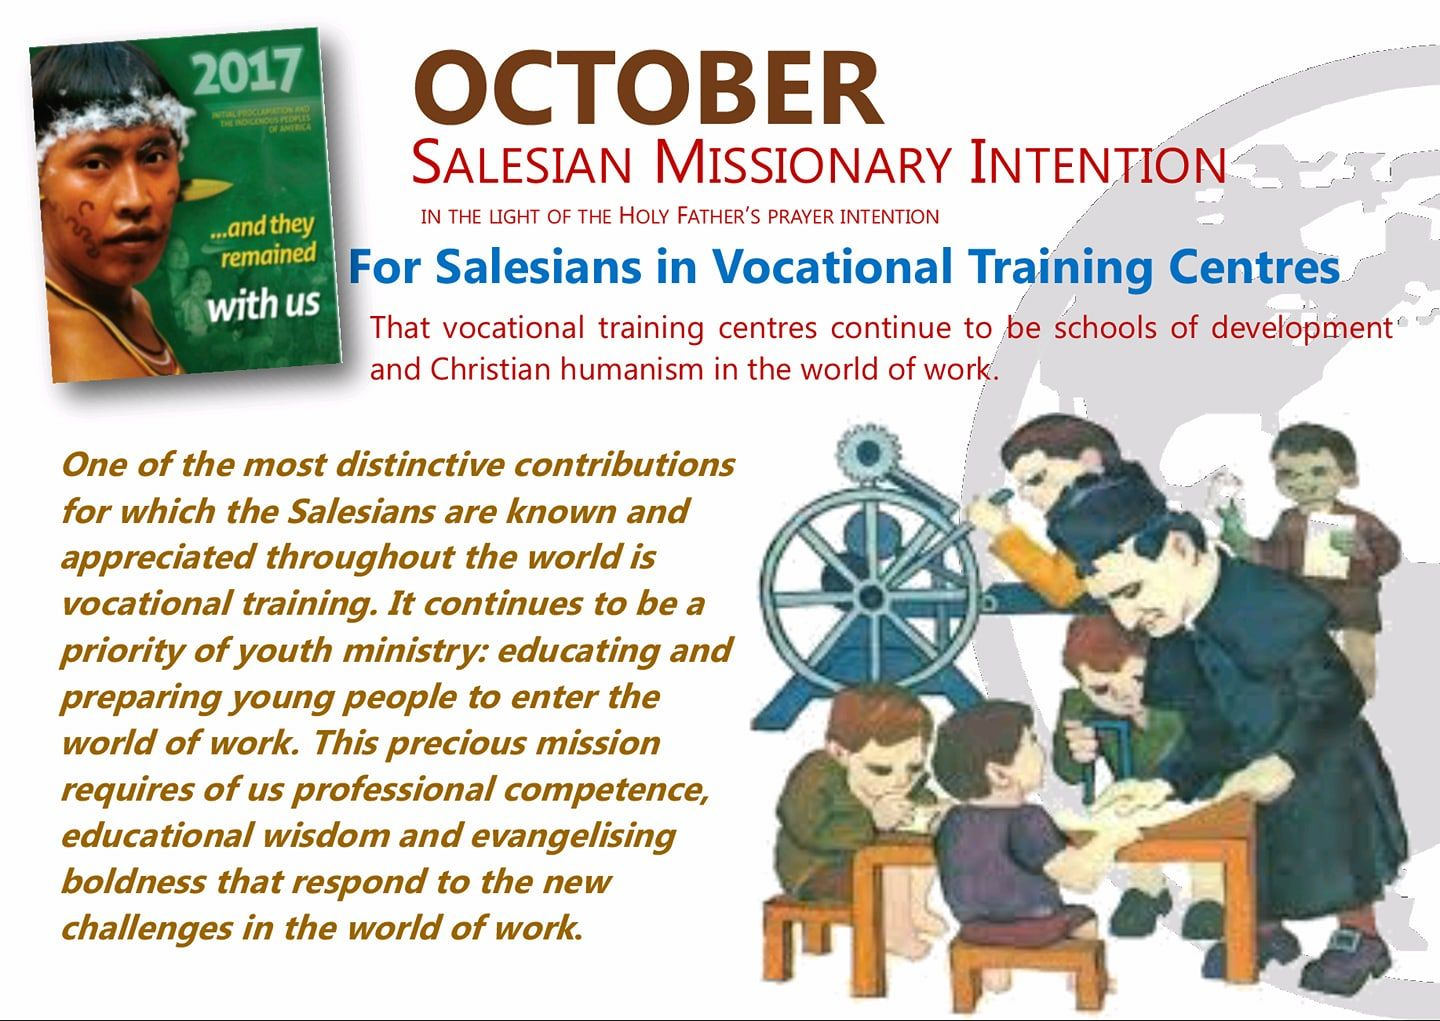 2017 Oct prayer intention VTC.jpg